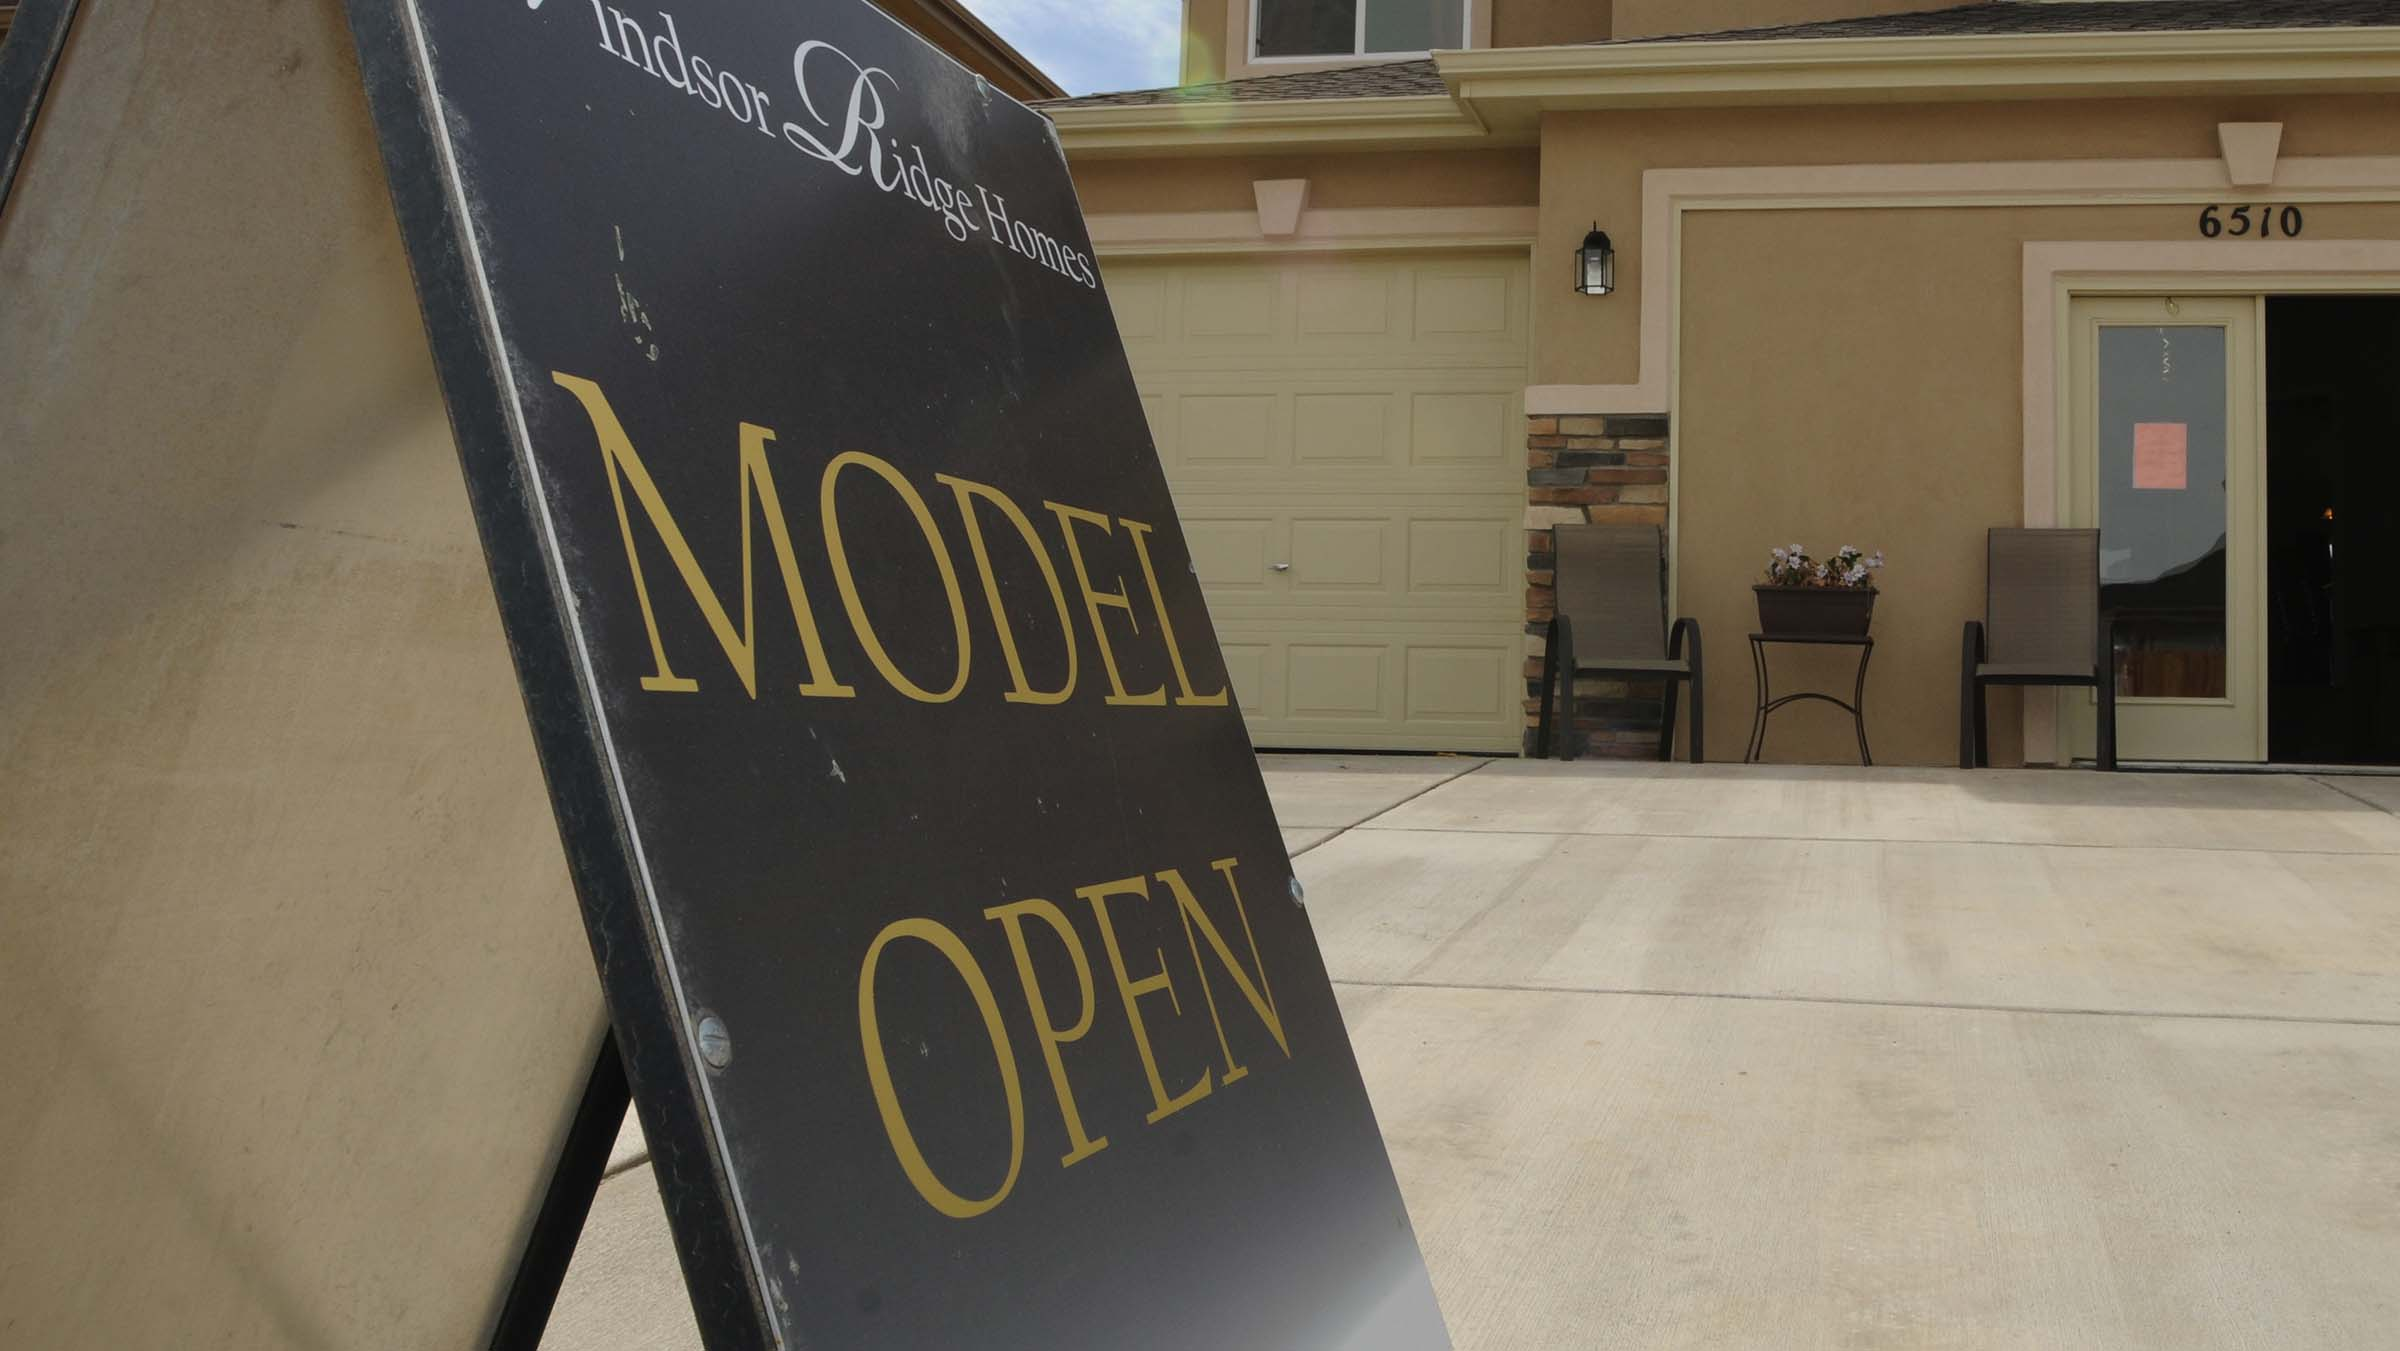 Real estate company hosts open house on their model homes.